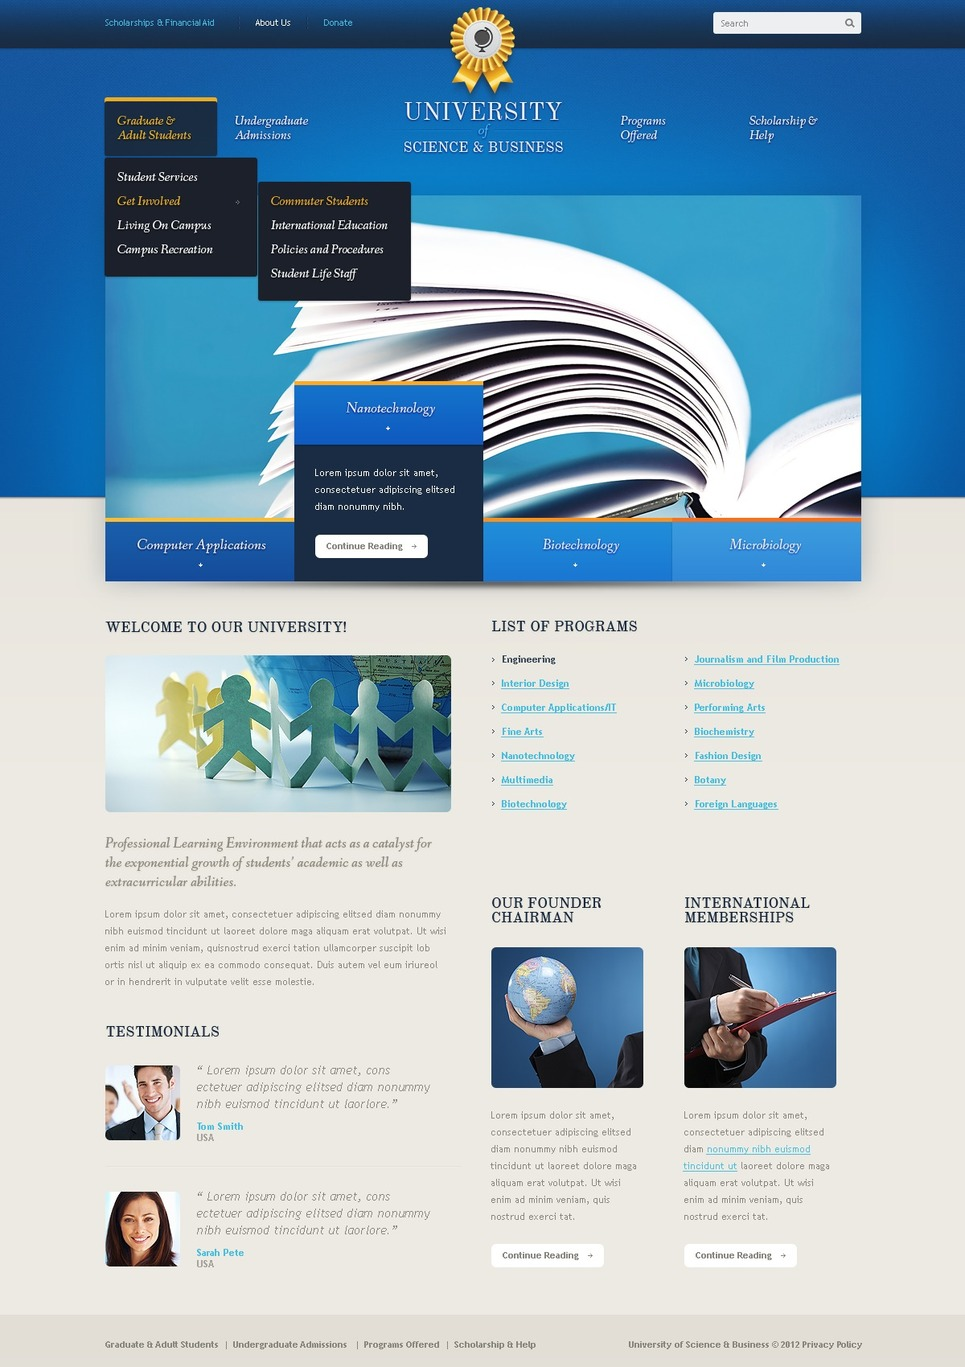 University Joomla Template New Screenshots BIG